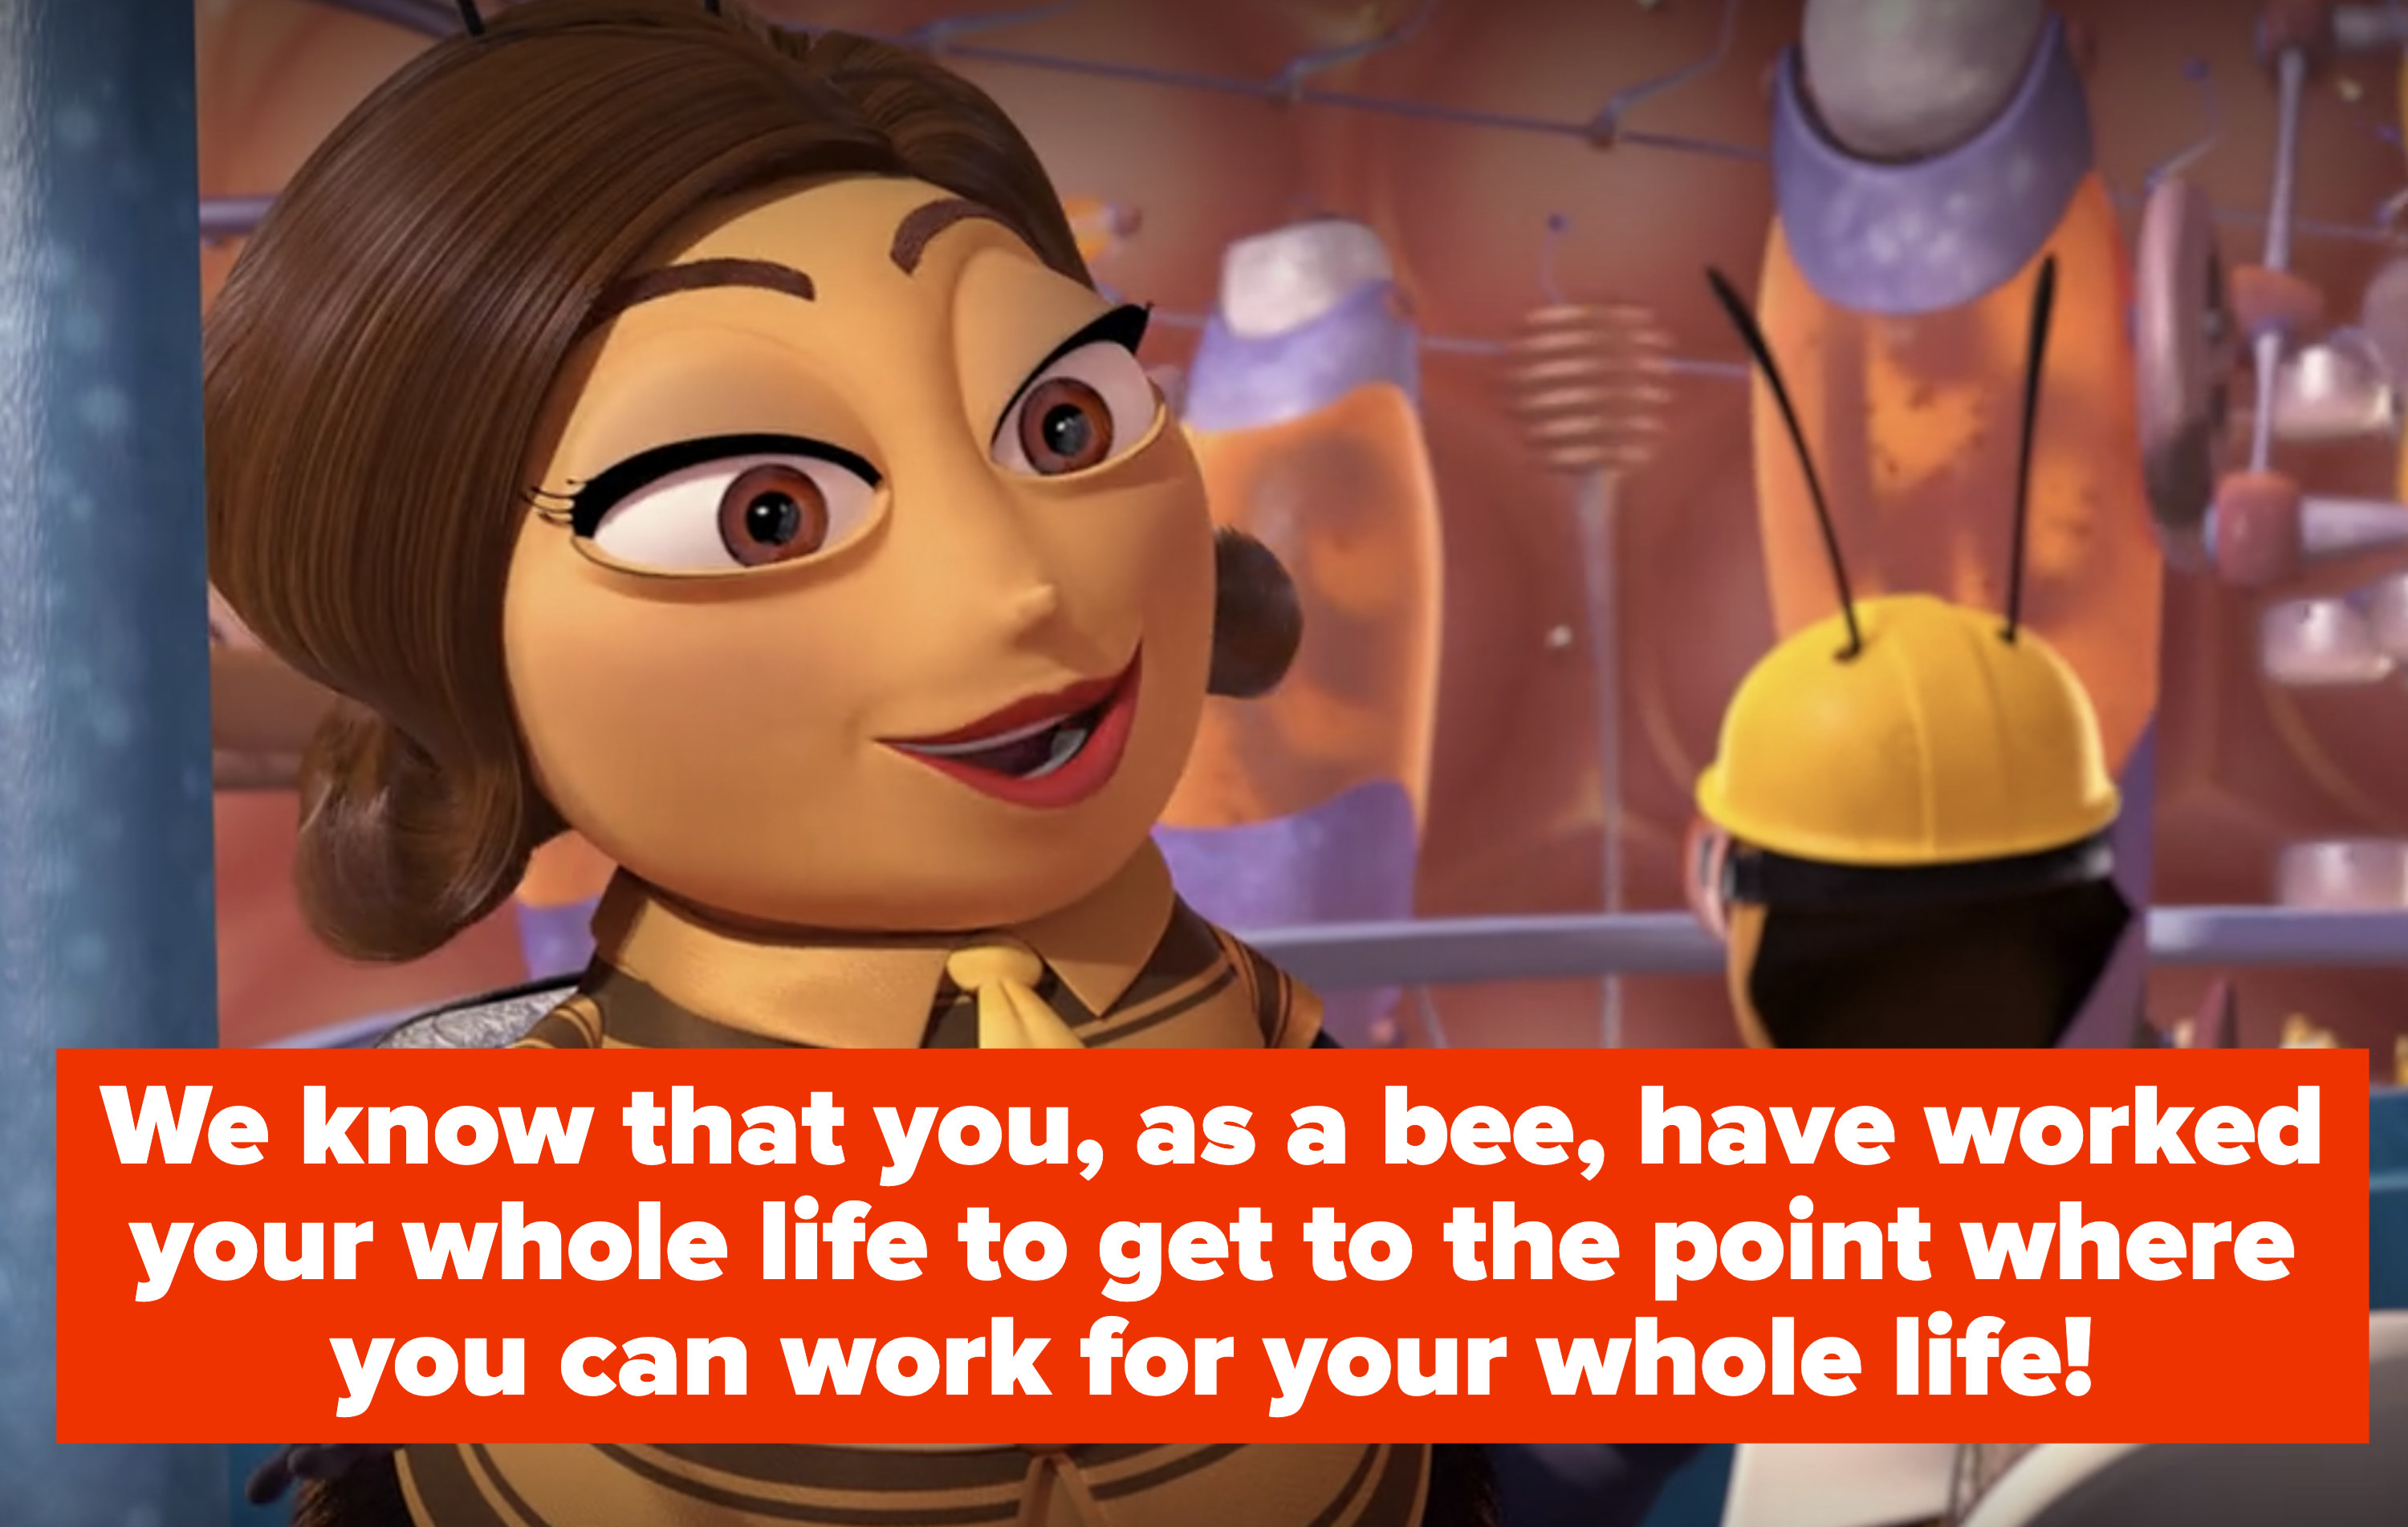 """a woman giving a tour of the hive says """"We know that you, as a bee, have worked your whole life to get to the point where you can work for your whole life!"""""""